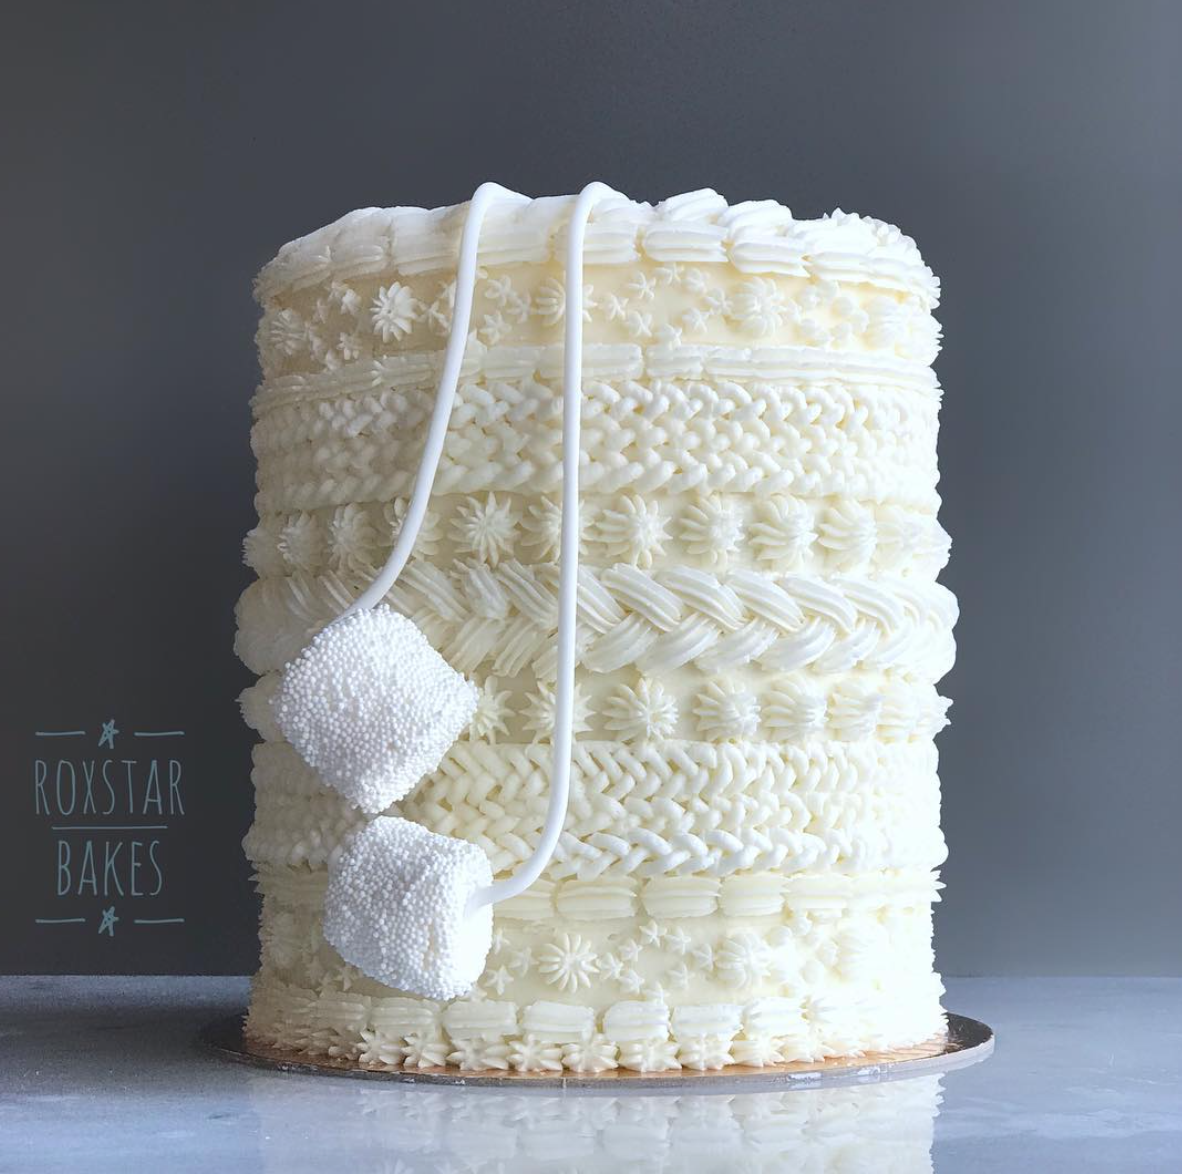 Buttercream Sweater Cake by Rox Star Bakes (Credit: Rox Star Bakes)